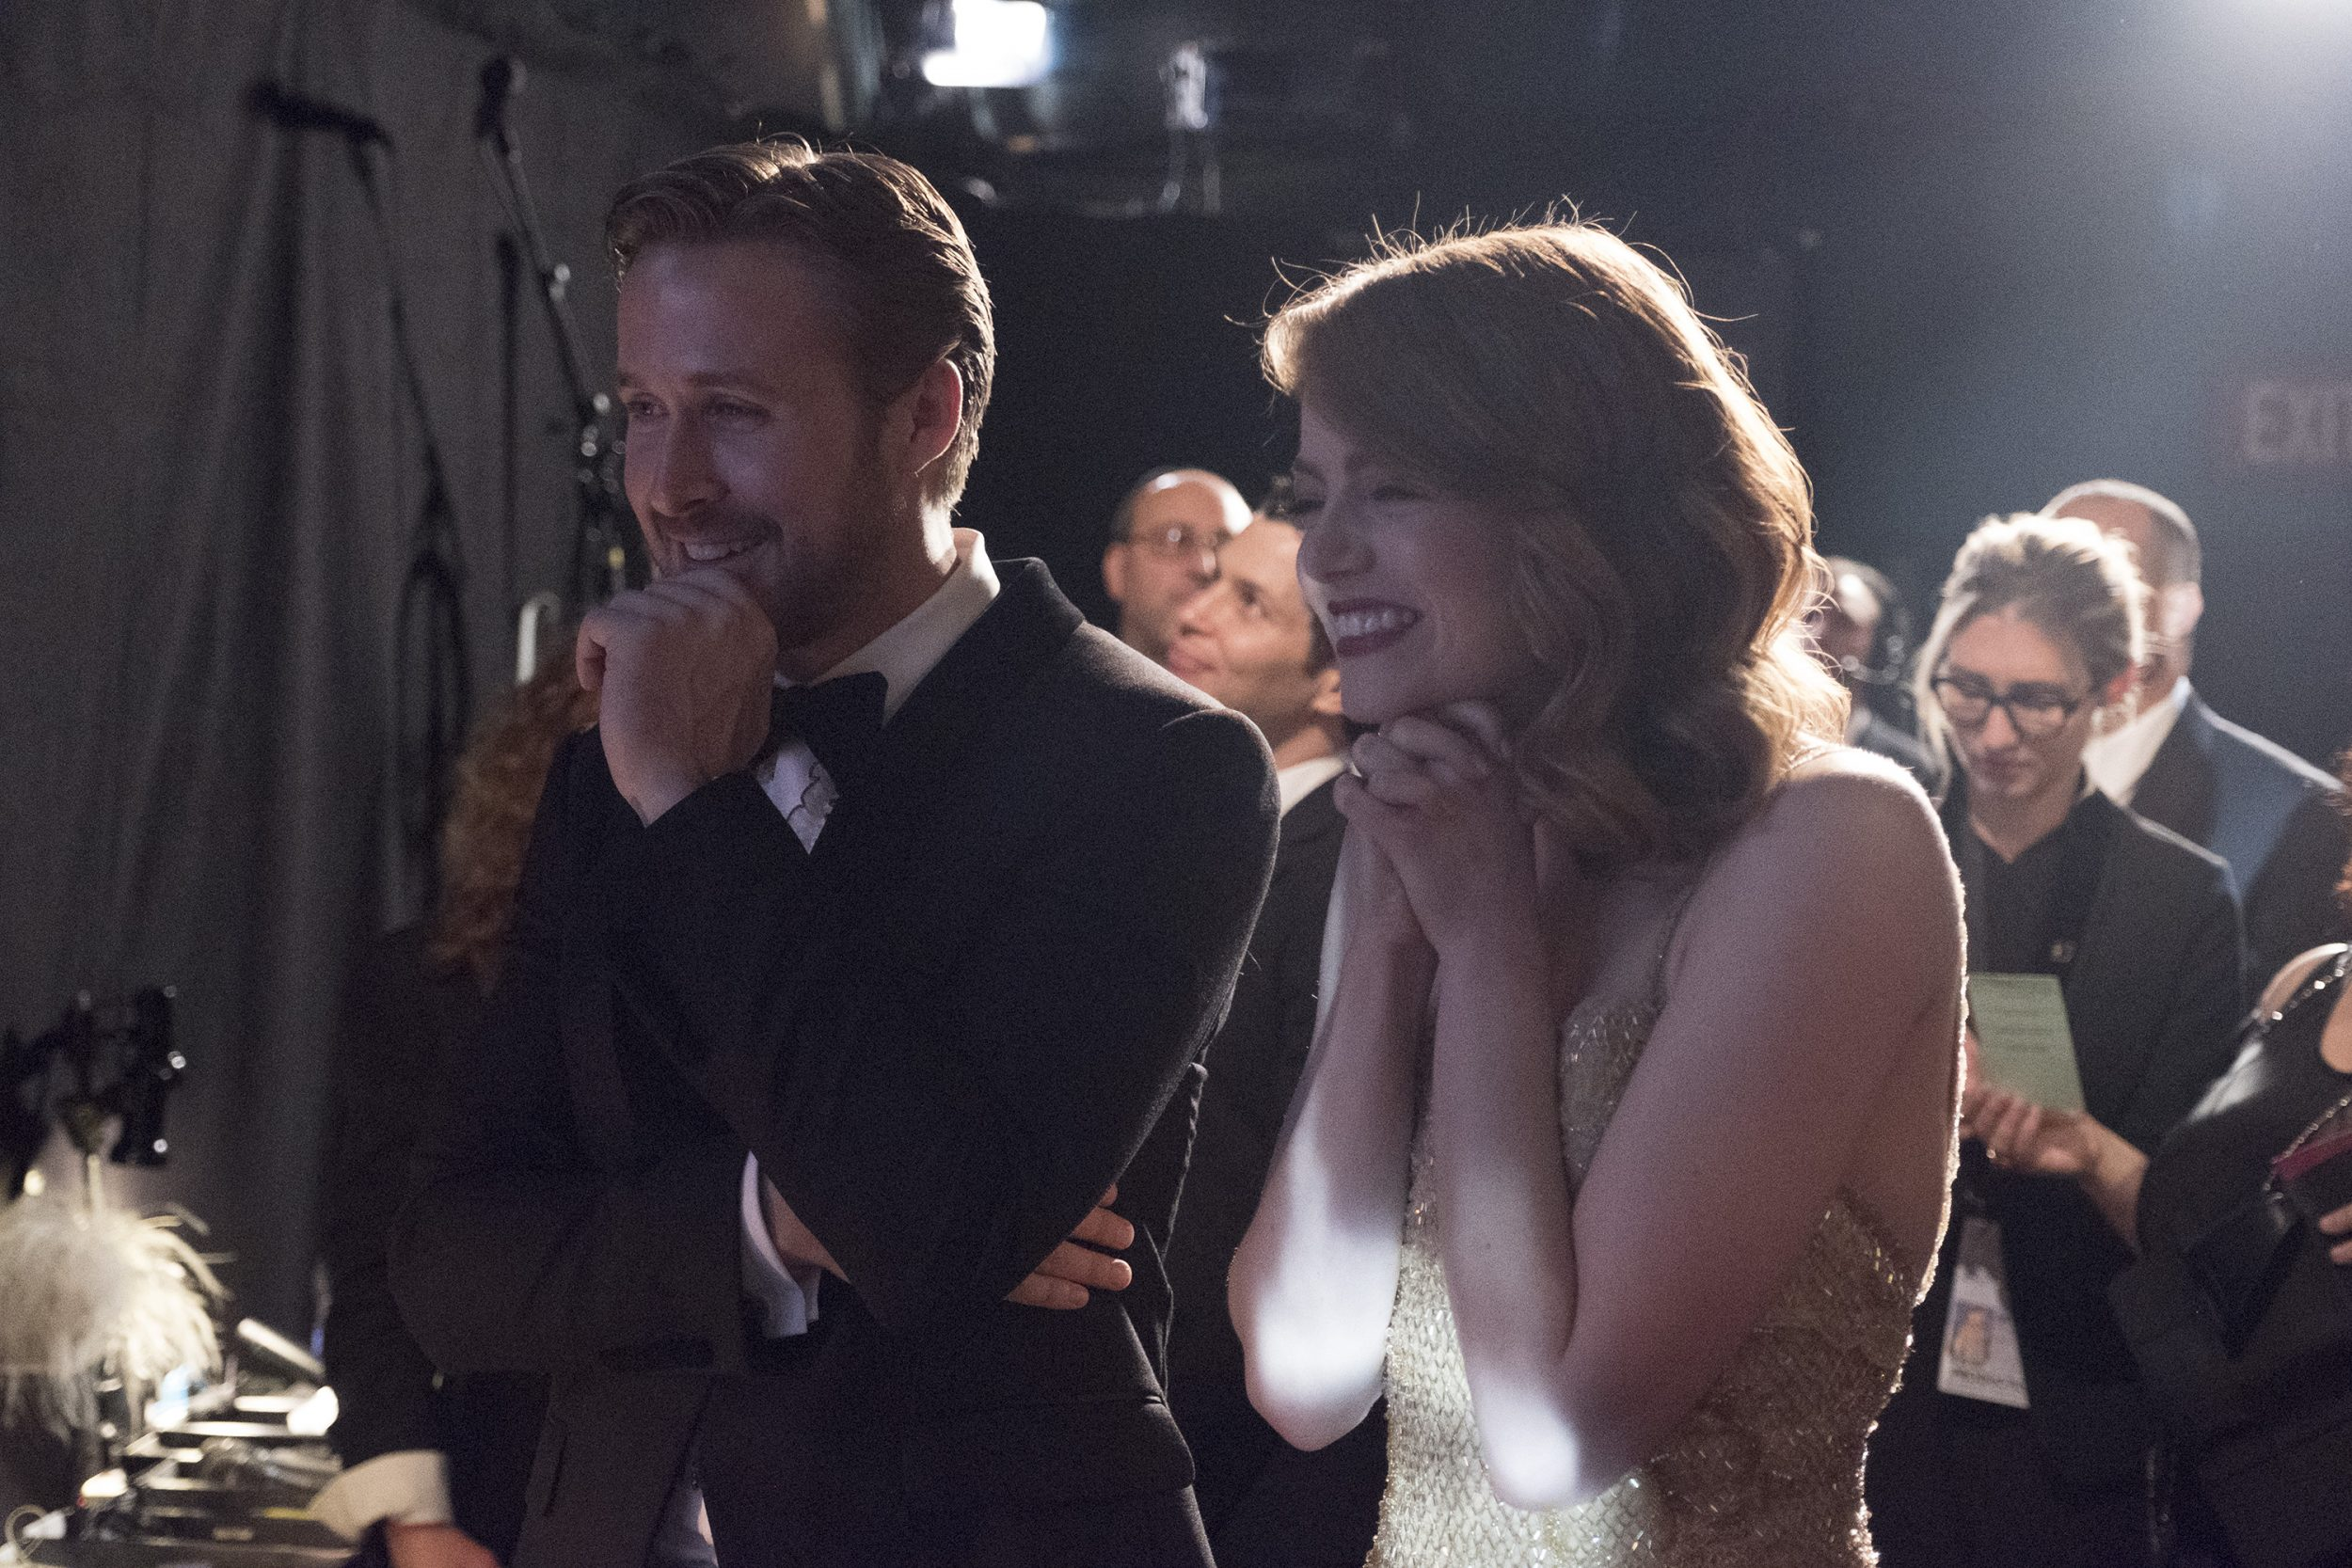 THE OSCARS(r) - The 89th Oscars(r)  broadcasts live on Oscar(r) SUNDAY, FEBRUARY 26, 2017, on the ABC Television Network. (ABC/Adam Rose) RYAN GOSLING, EMMA STONE